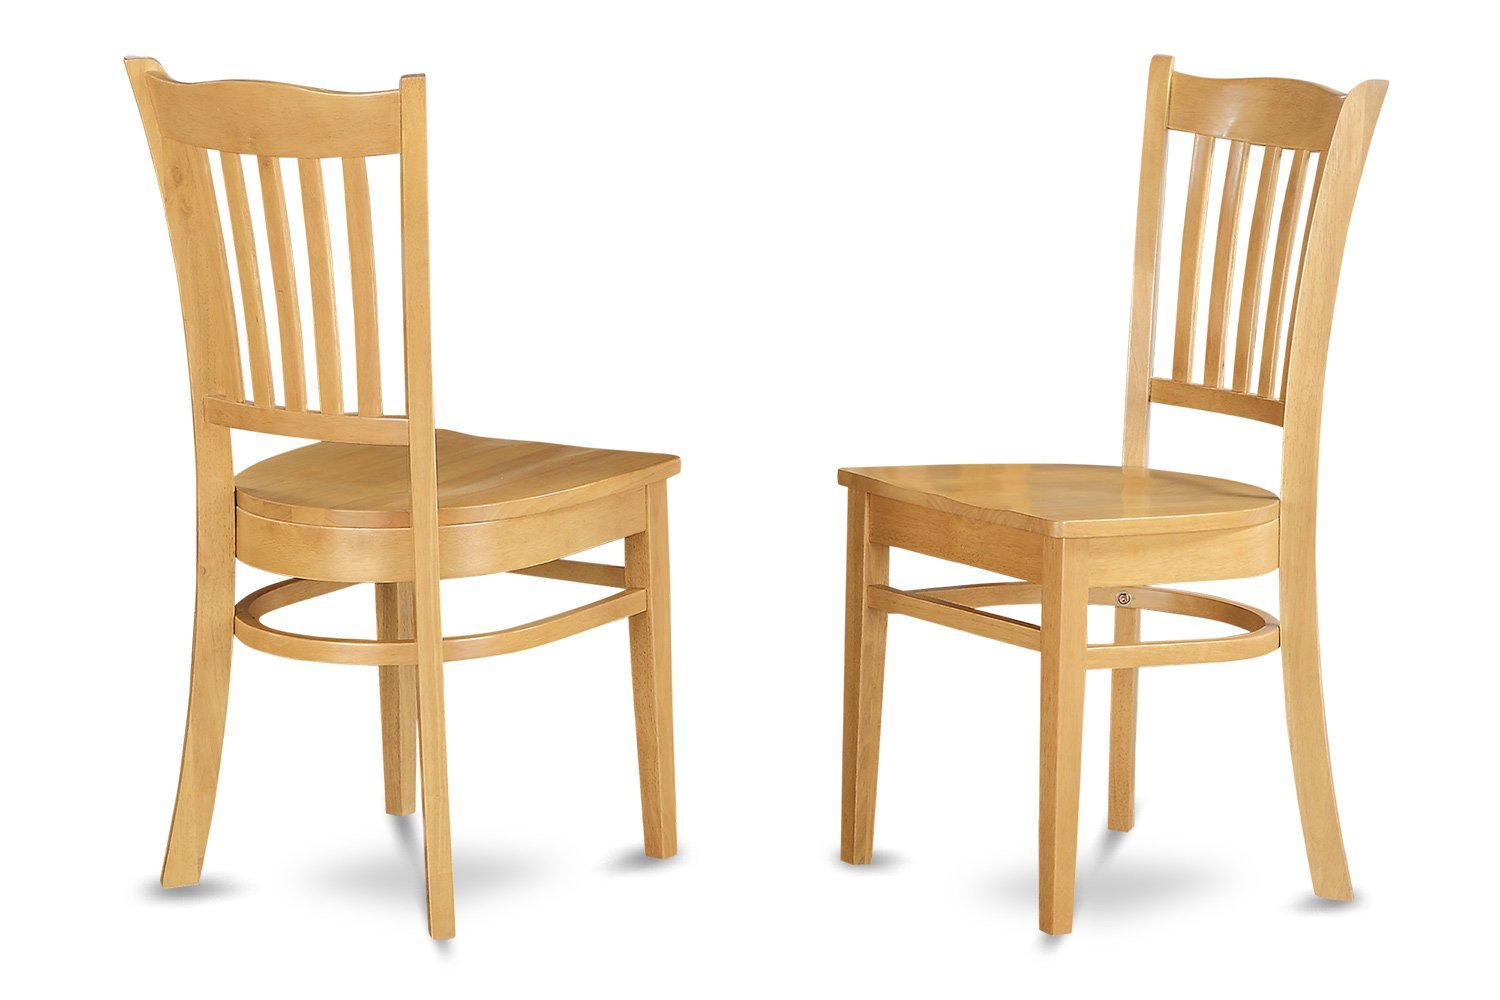 East West Furniture GRC-Oak-W Dining Chair Set with Wood Seat, Oak Finish, Set of 2